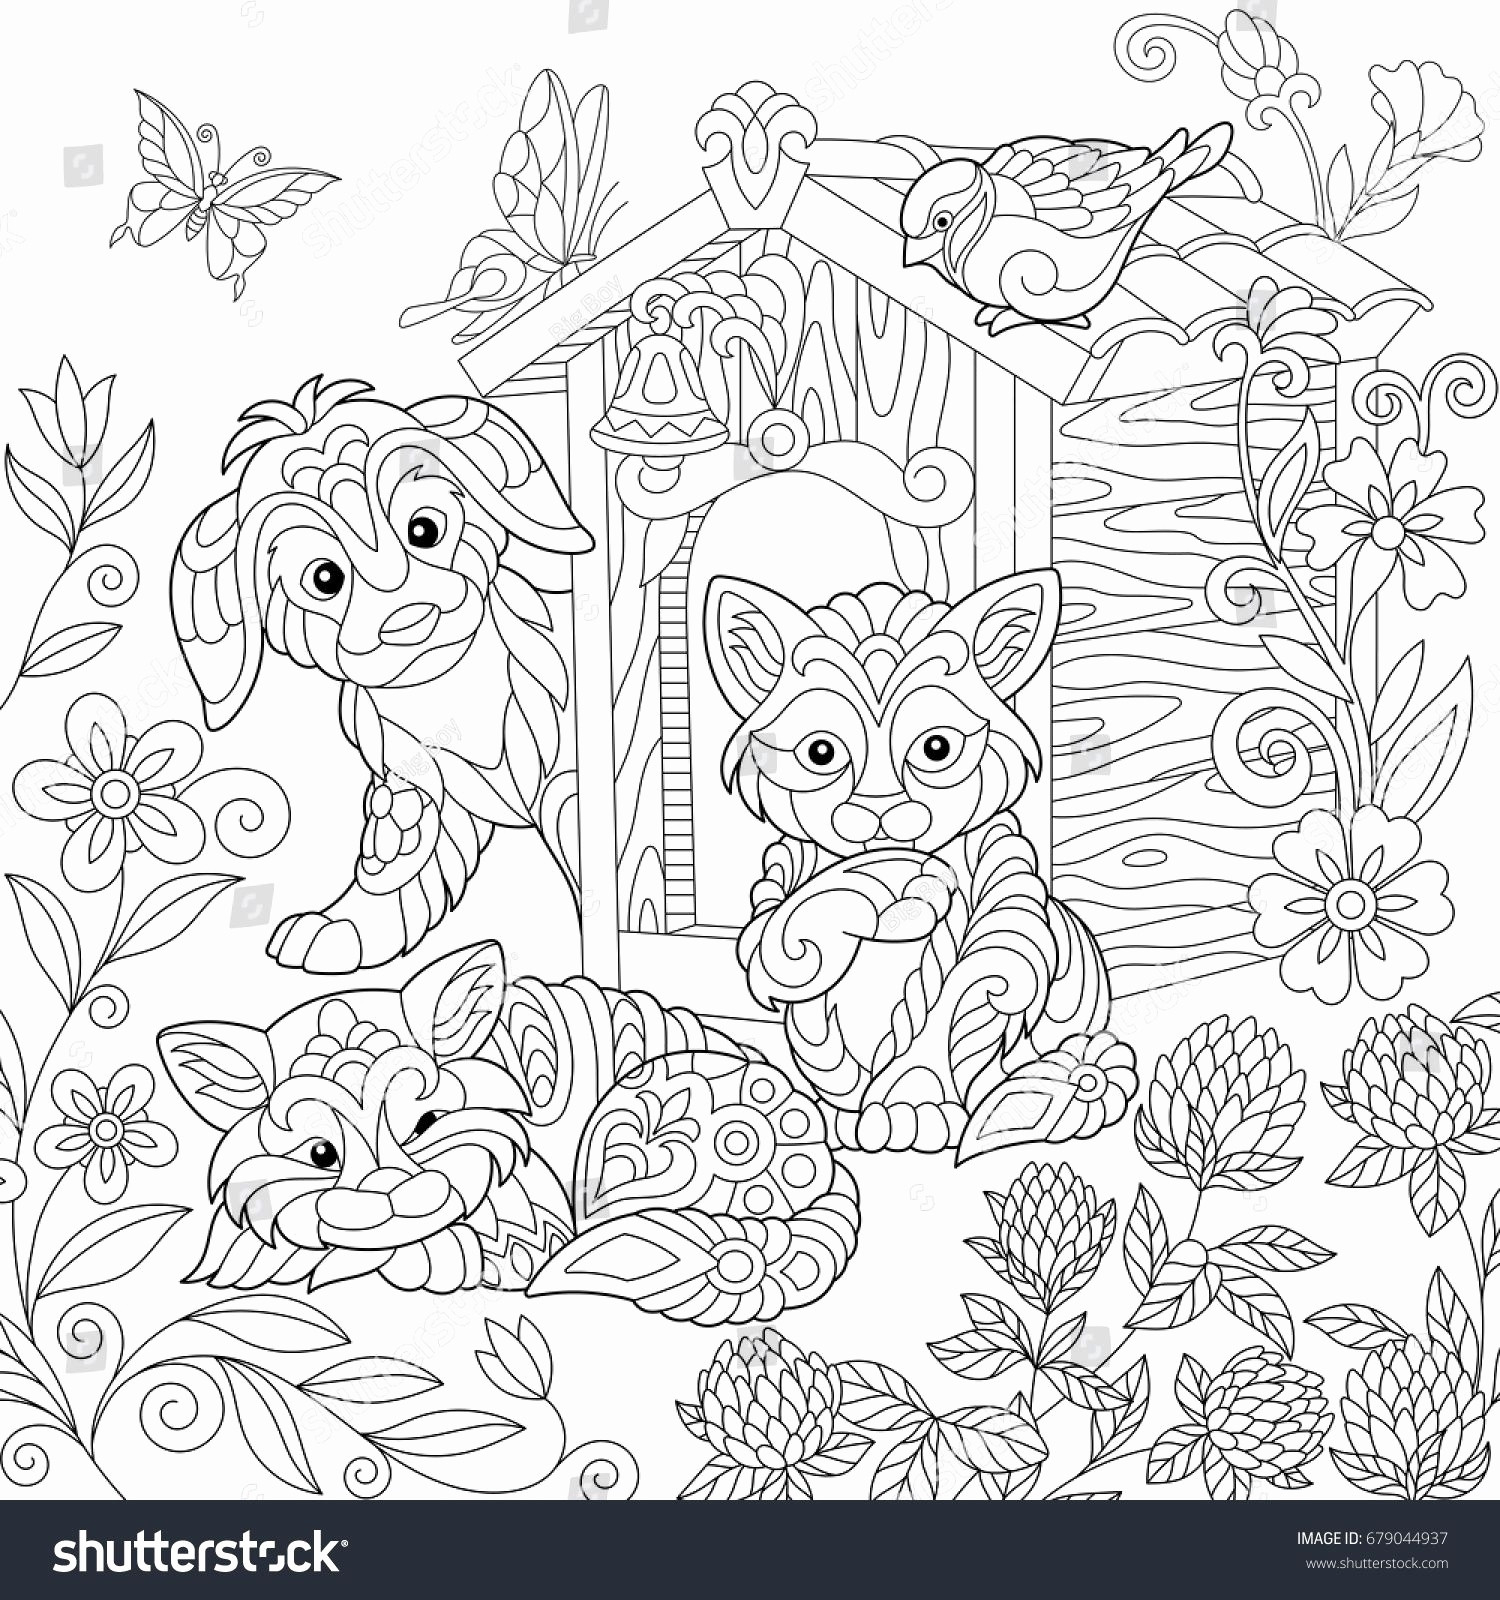 30 Sparky The Fire Dog Coloring Pages Gallery Coloring Sheets